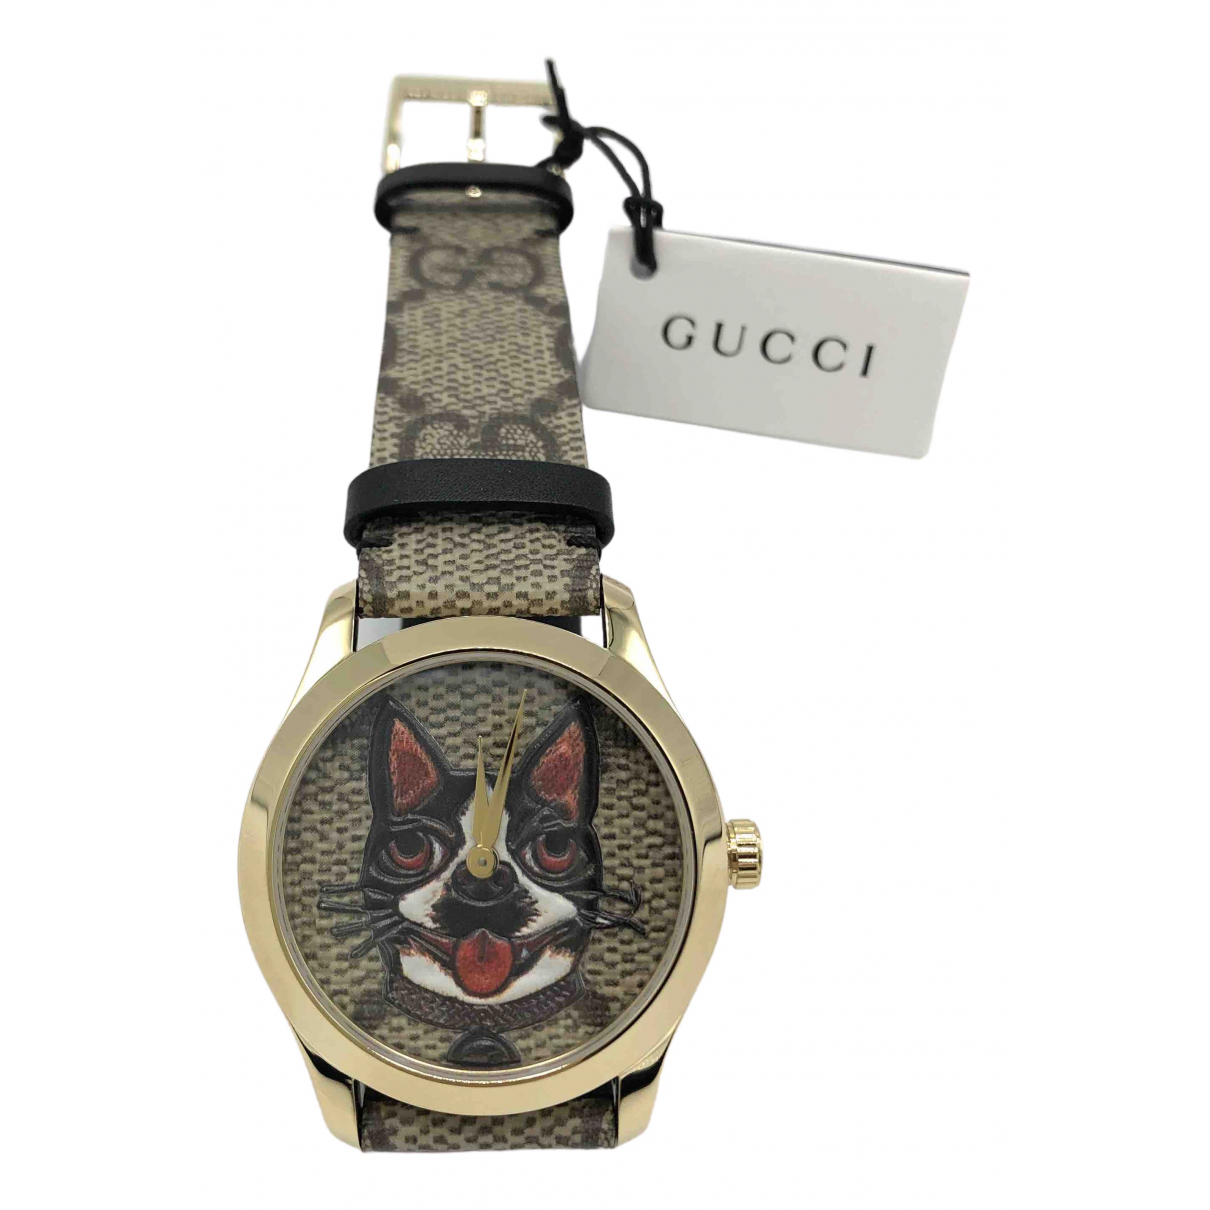 Gucci - Montre G-Timeless pour femme en plaque or - marron